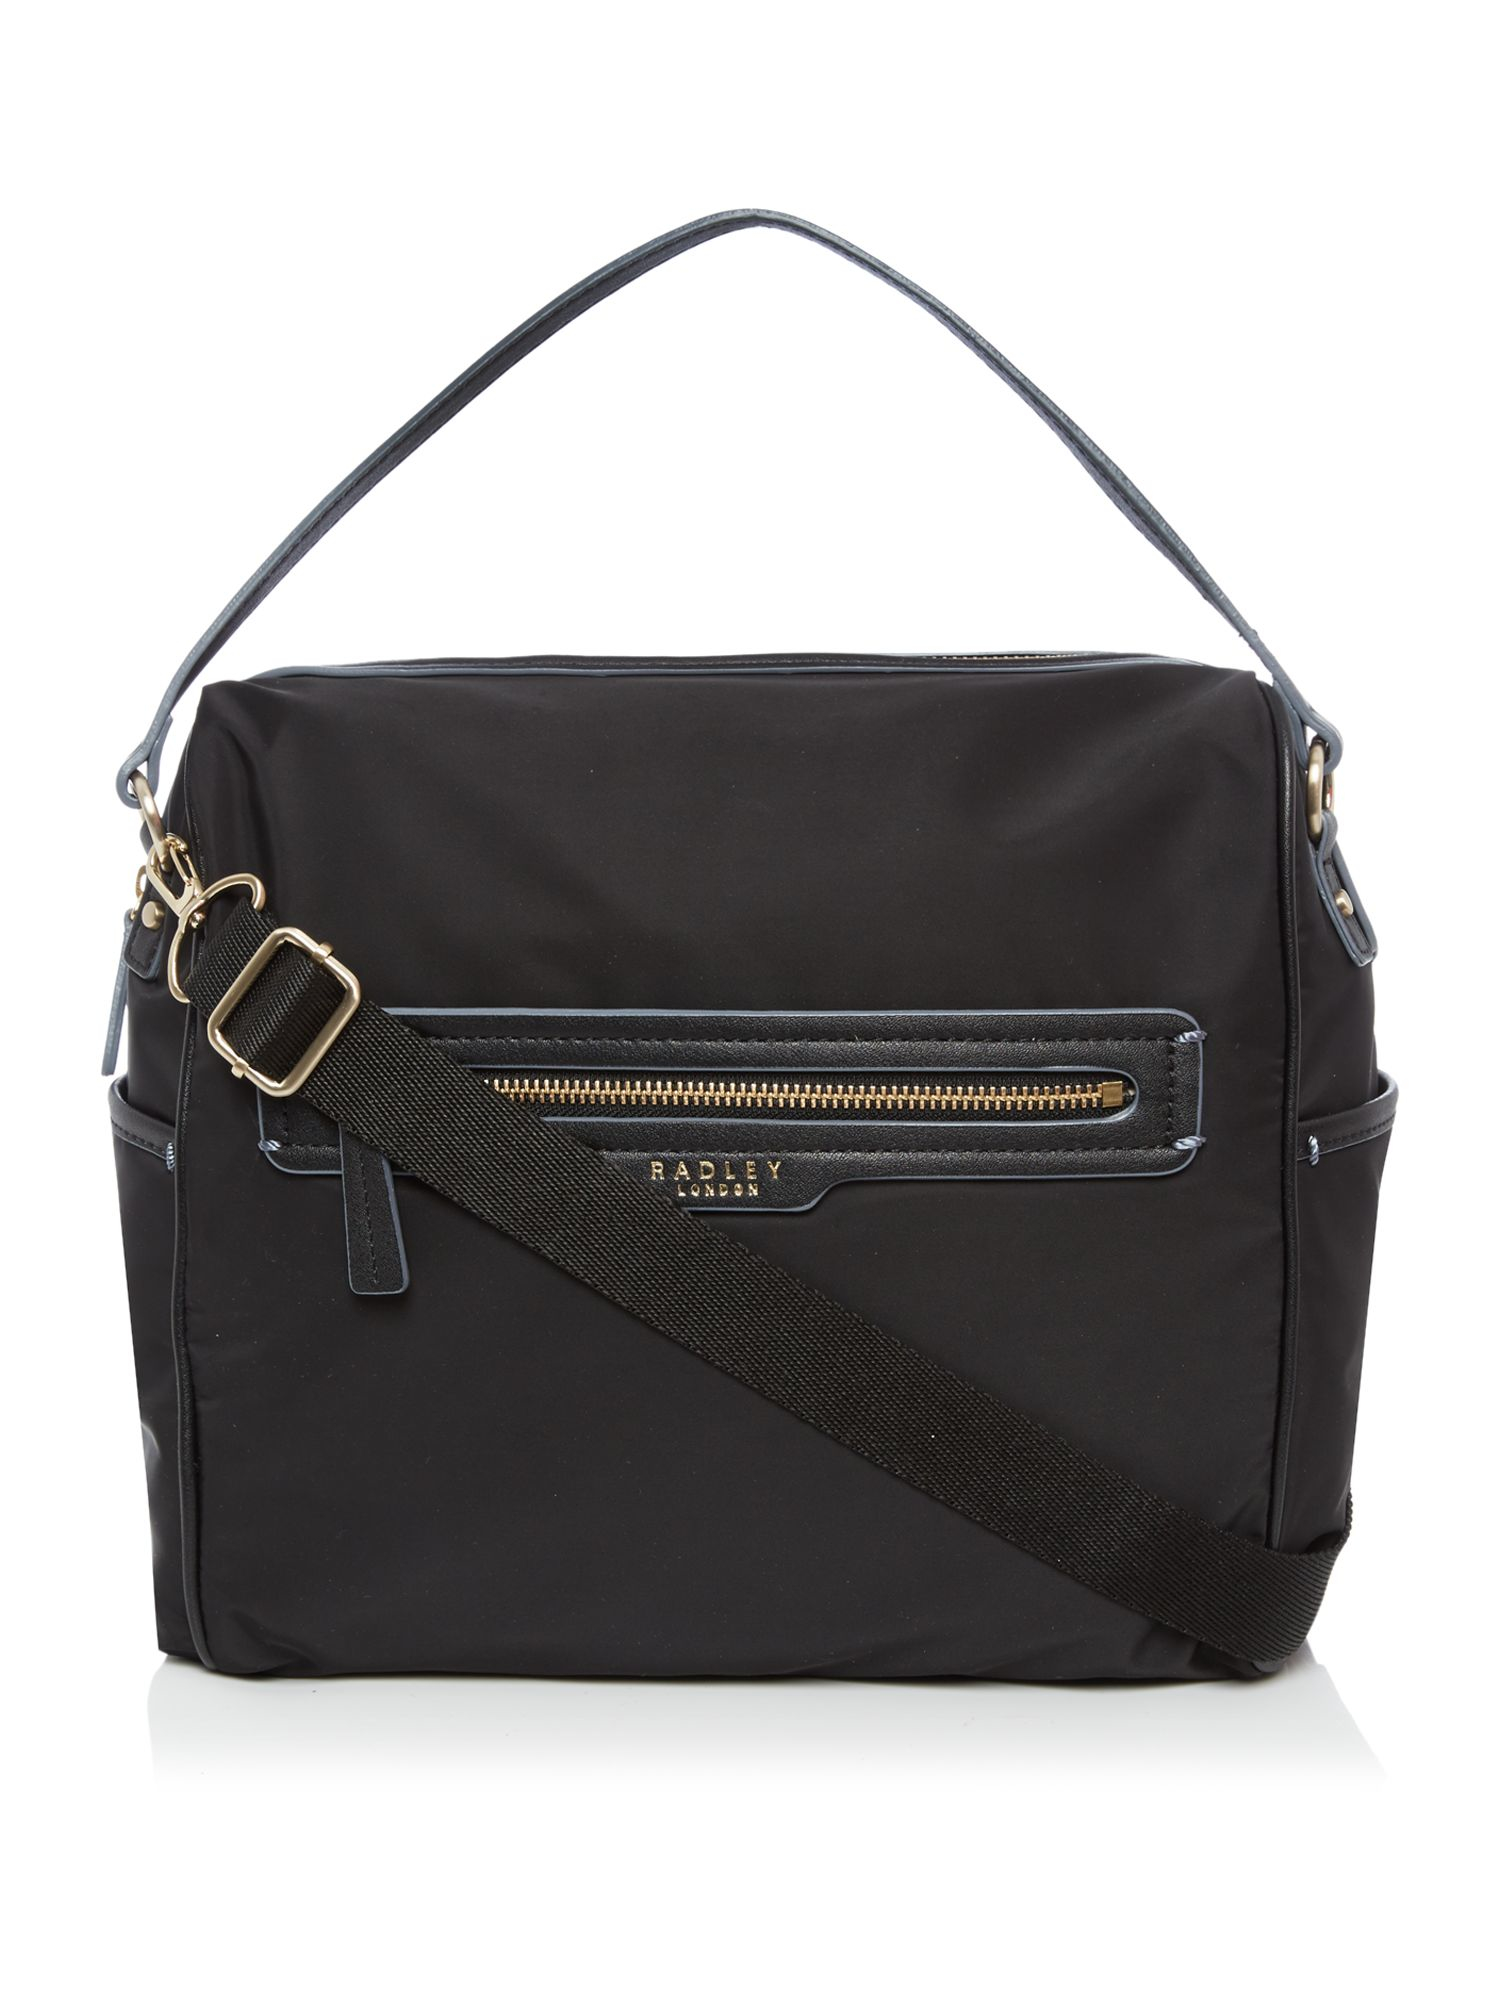 Find great deals on eBay for large black crossbody bag. Shop with confidence.